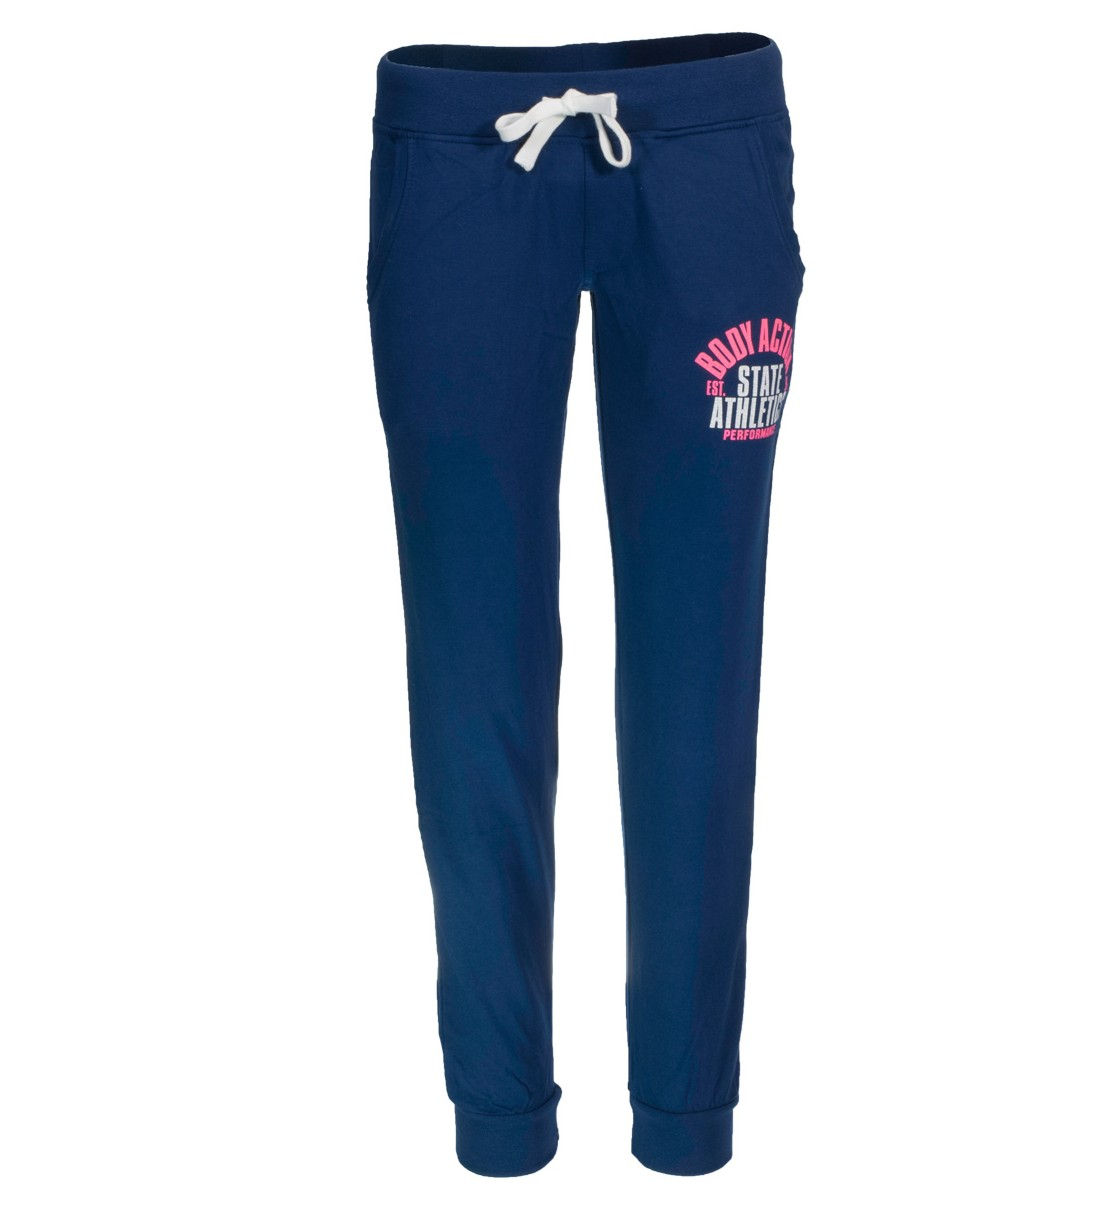 Body Action Γυναικείο Αθλητικό Παντελόνι Women Relaxed Fit Pants 021601